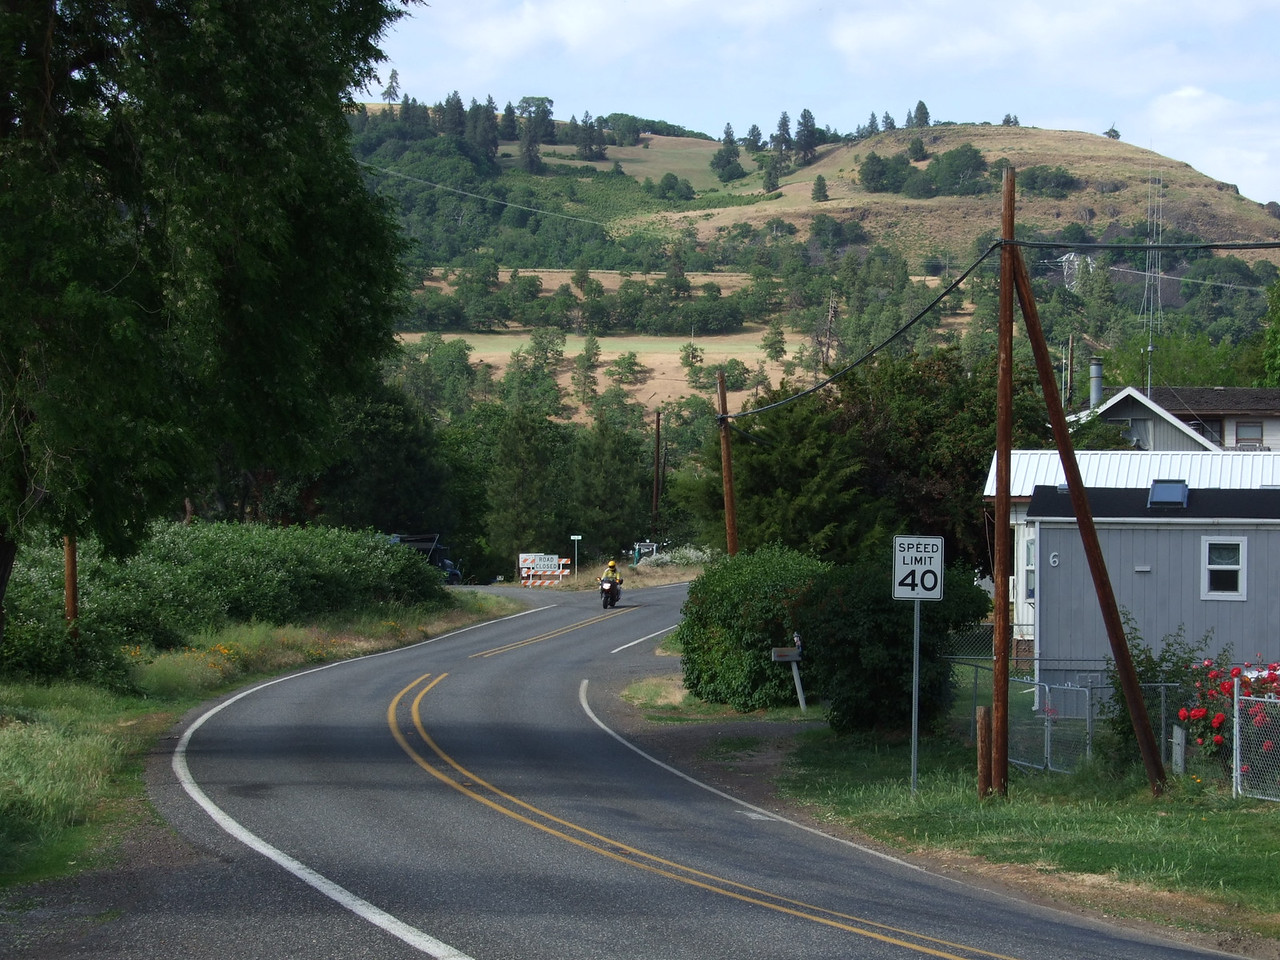 <b>Lovely landscape, looking back up the Klickitat River Road.</b><br>